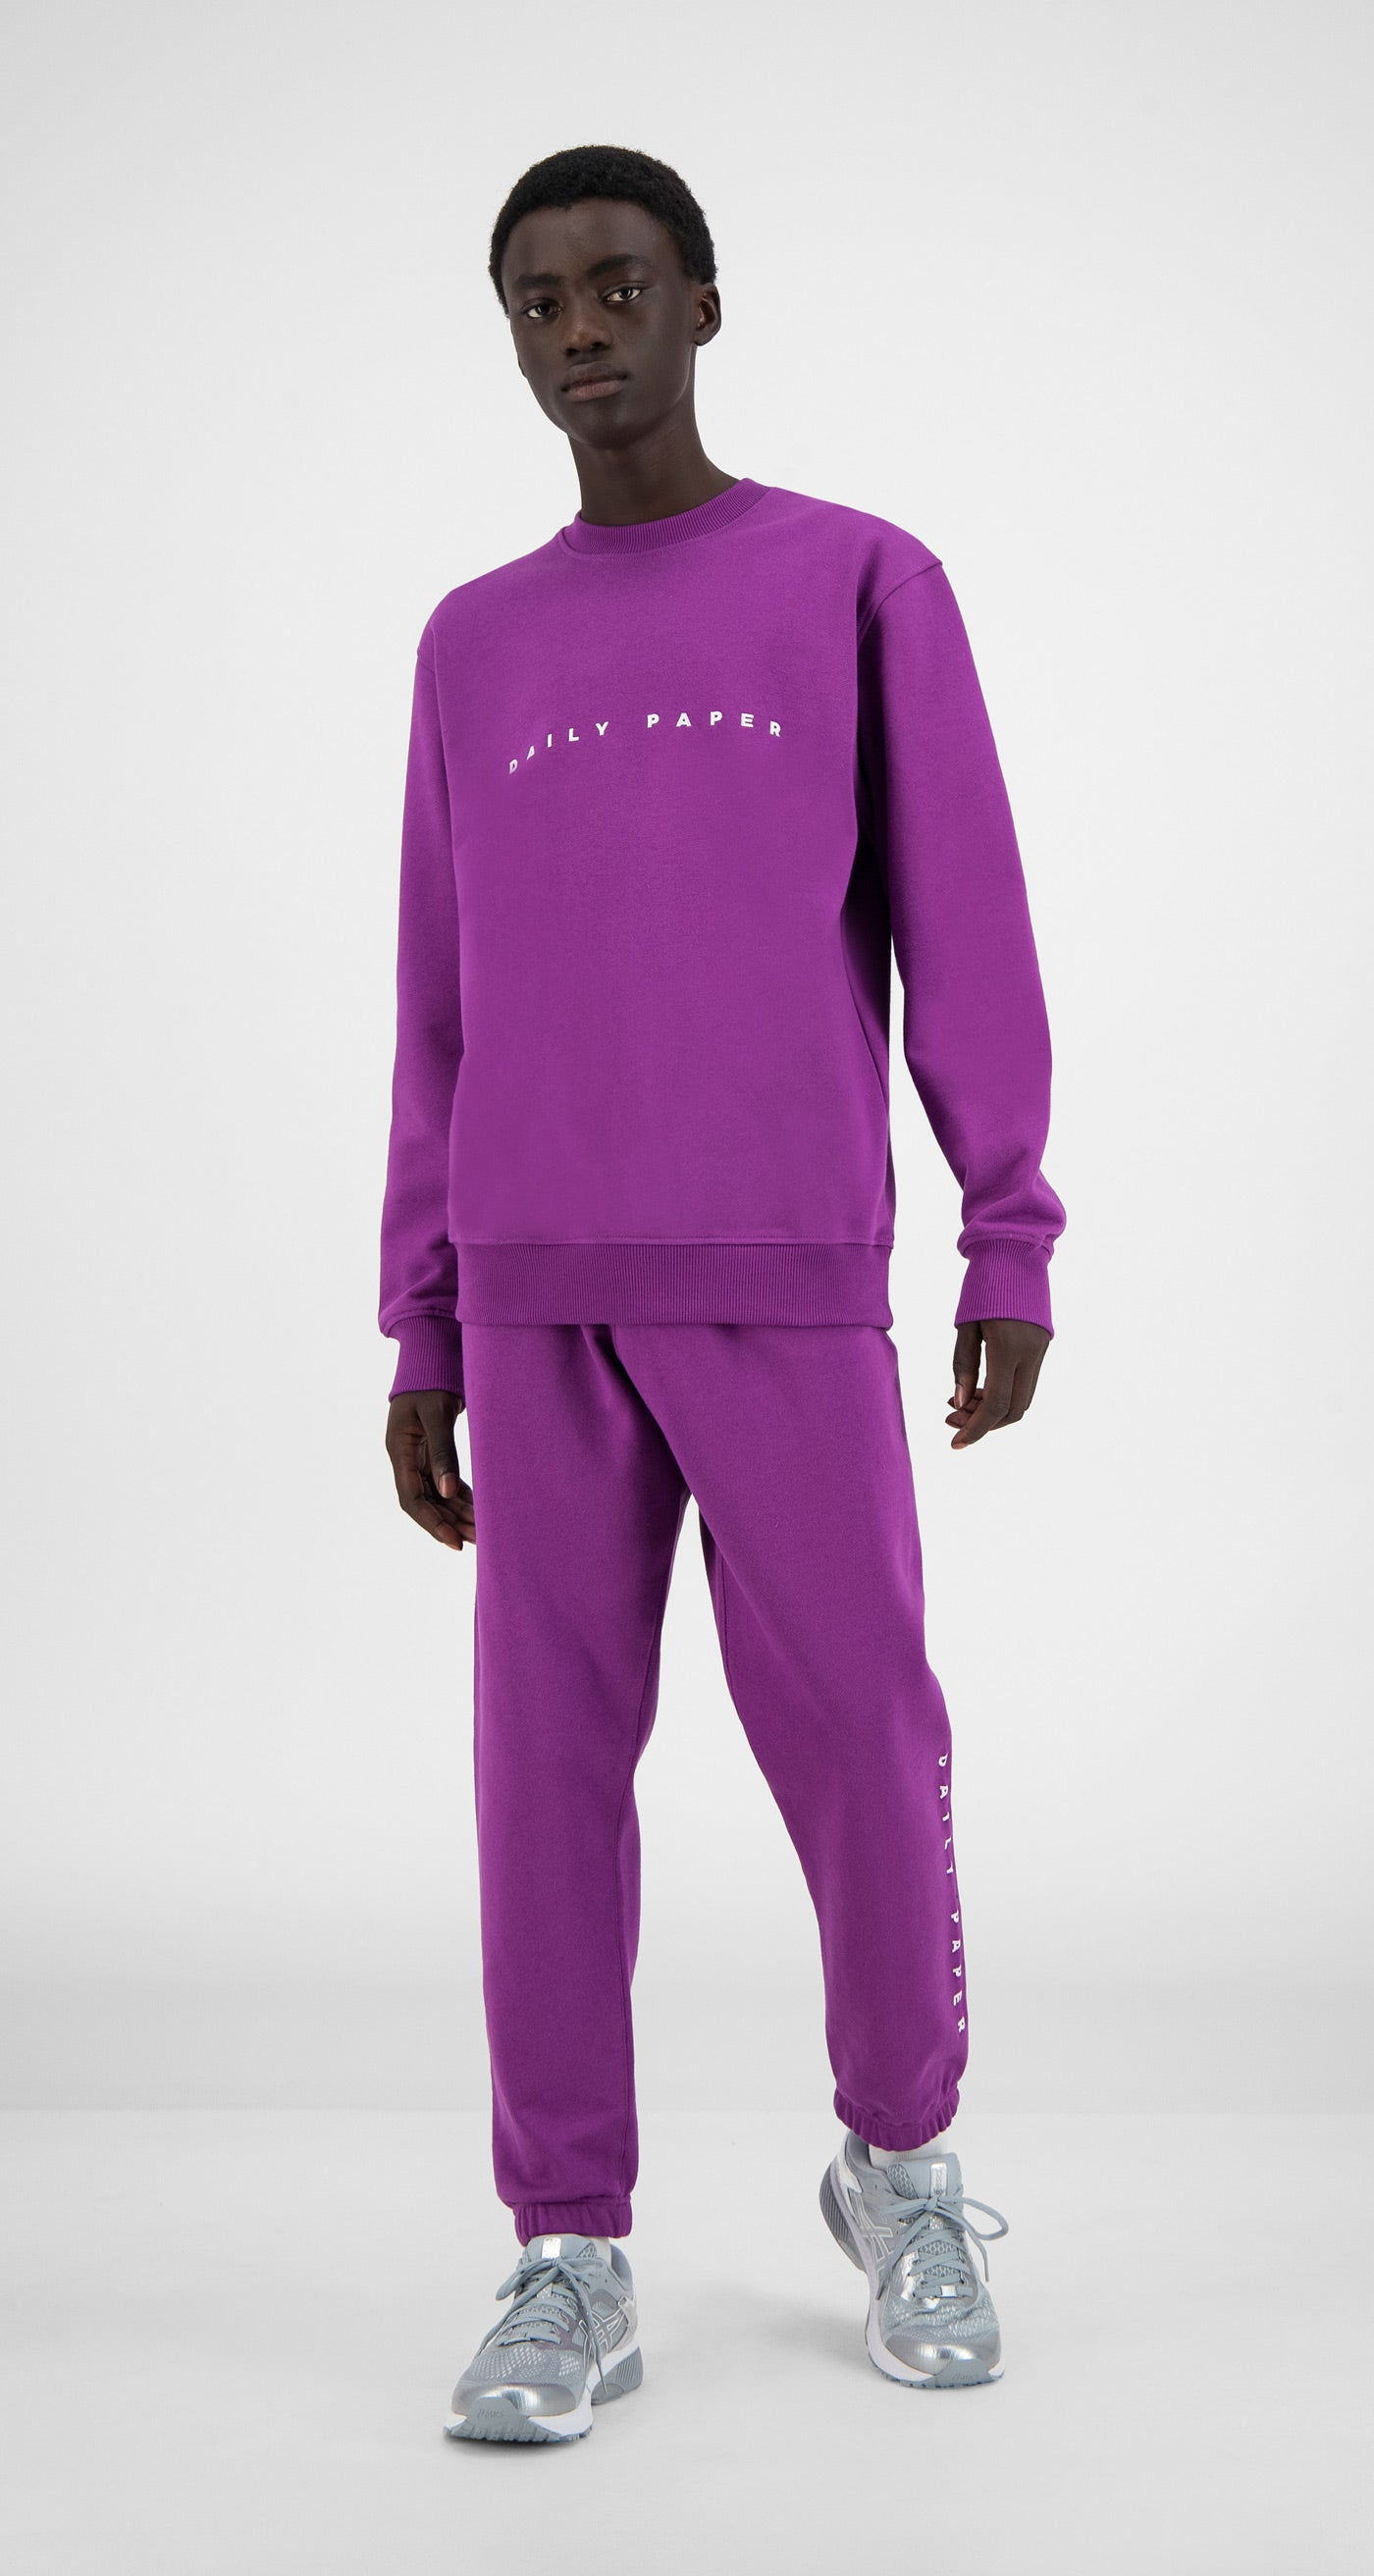 Daily Paper - Magenta Purple Alias Sweater - Men